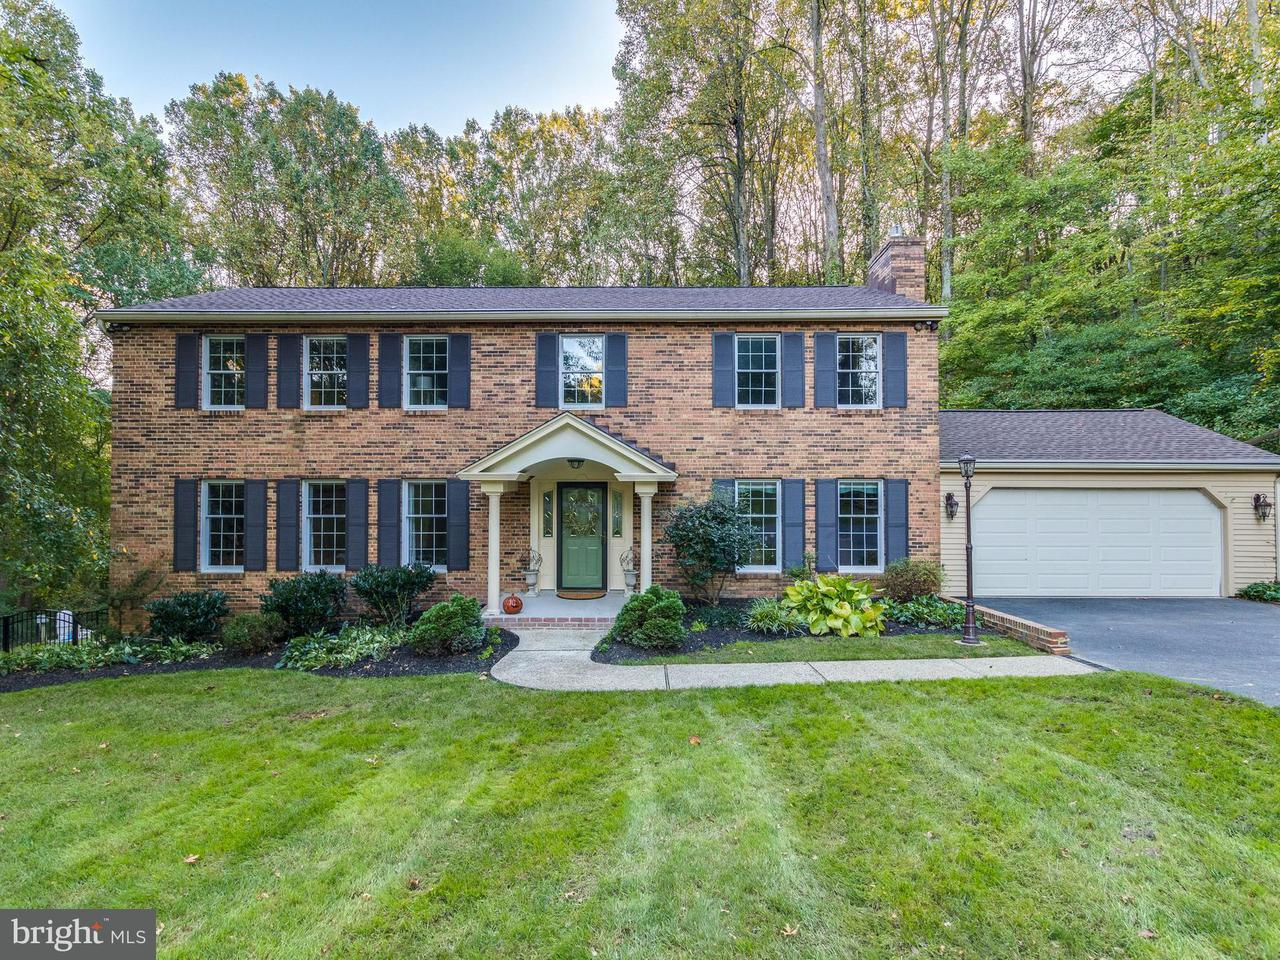 Single Family Home for Sale at 4 CHICKORY Court 4 CHICKORY Court Glen Arm, Maryland 21057 United States